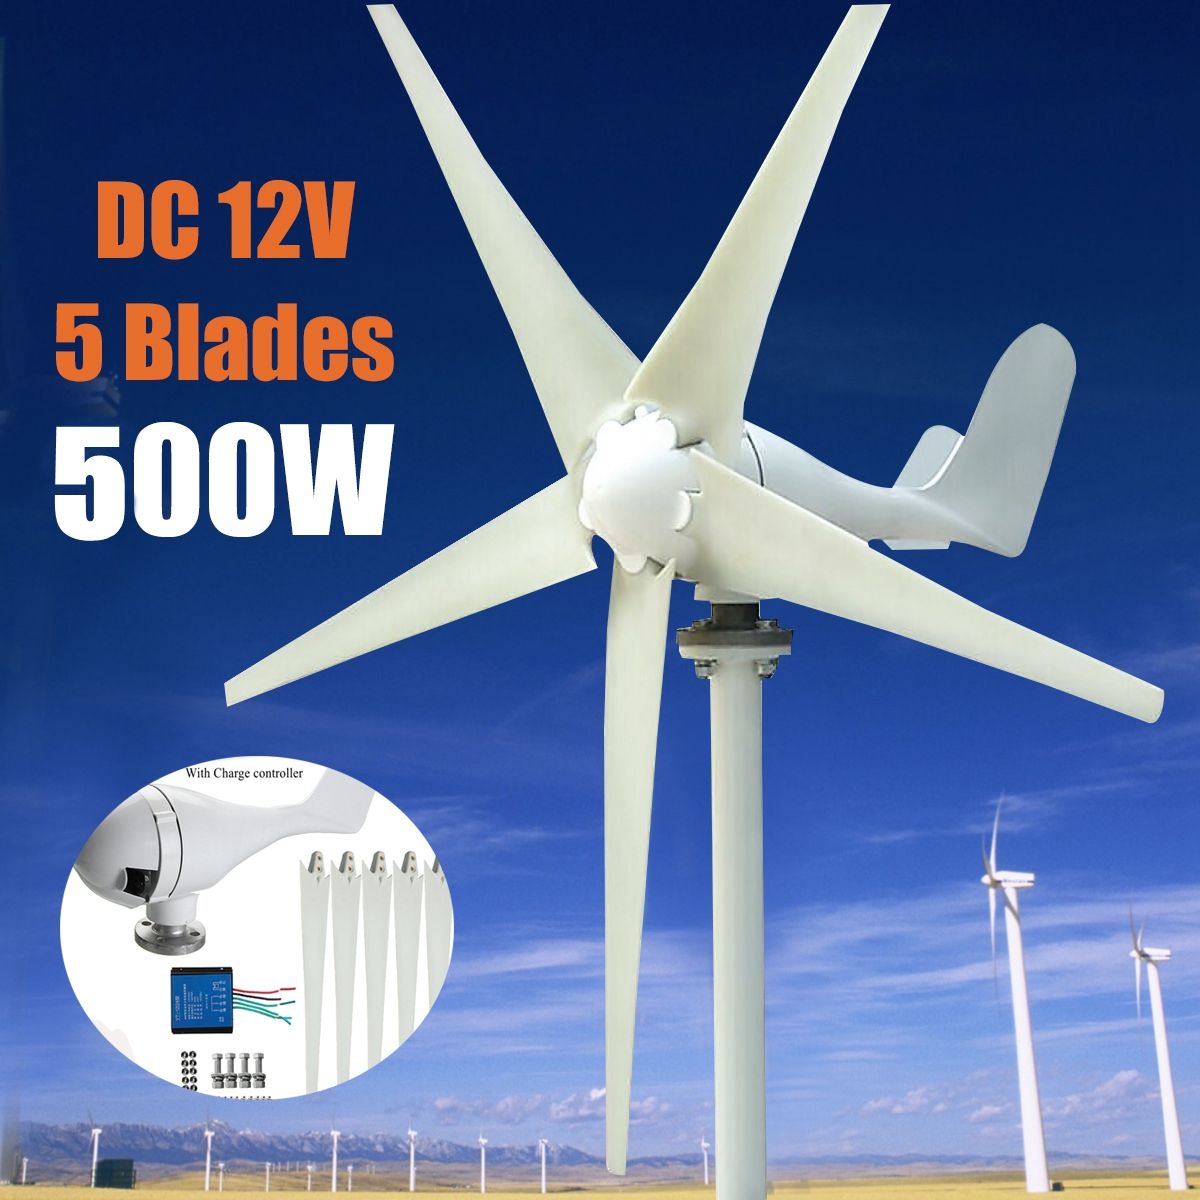 Max 600W Wind T urbine Generator DC 12V24V 5 Blade Power Supply + windmill Charge Controller